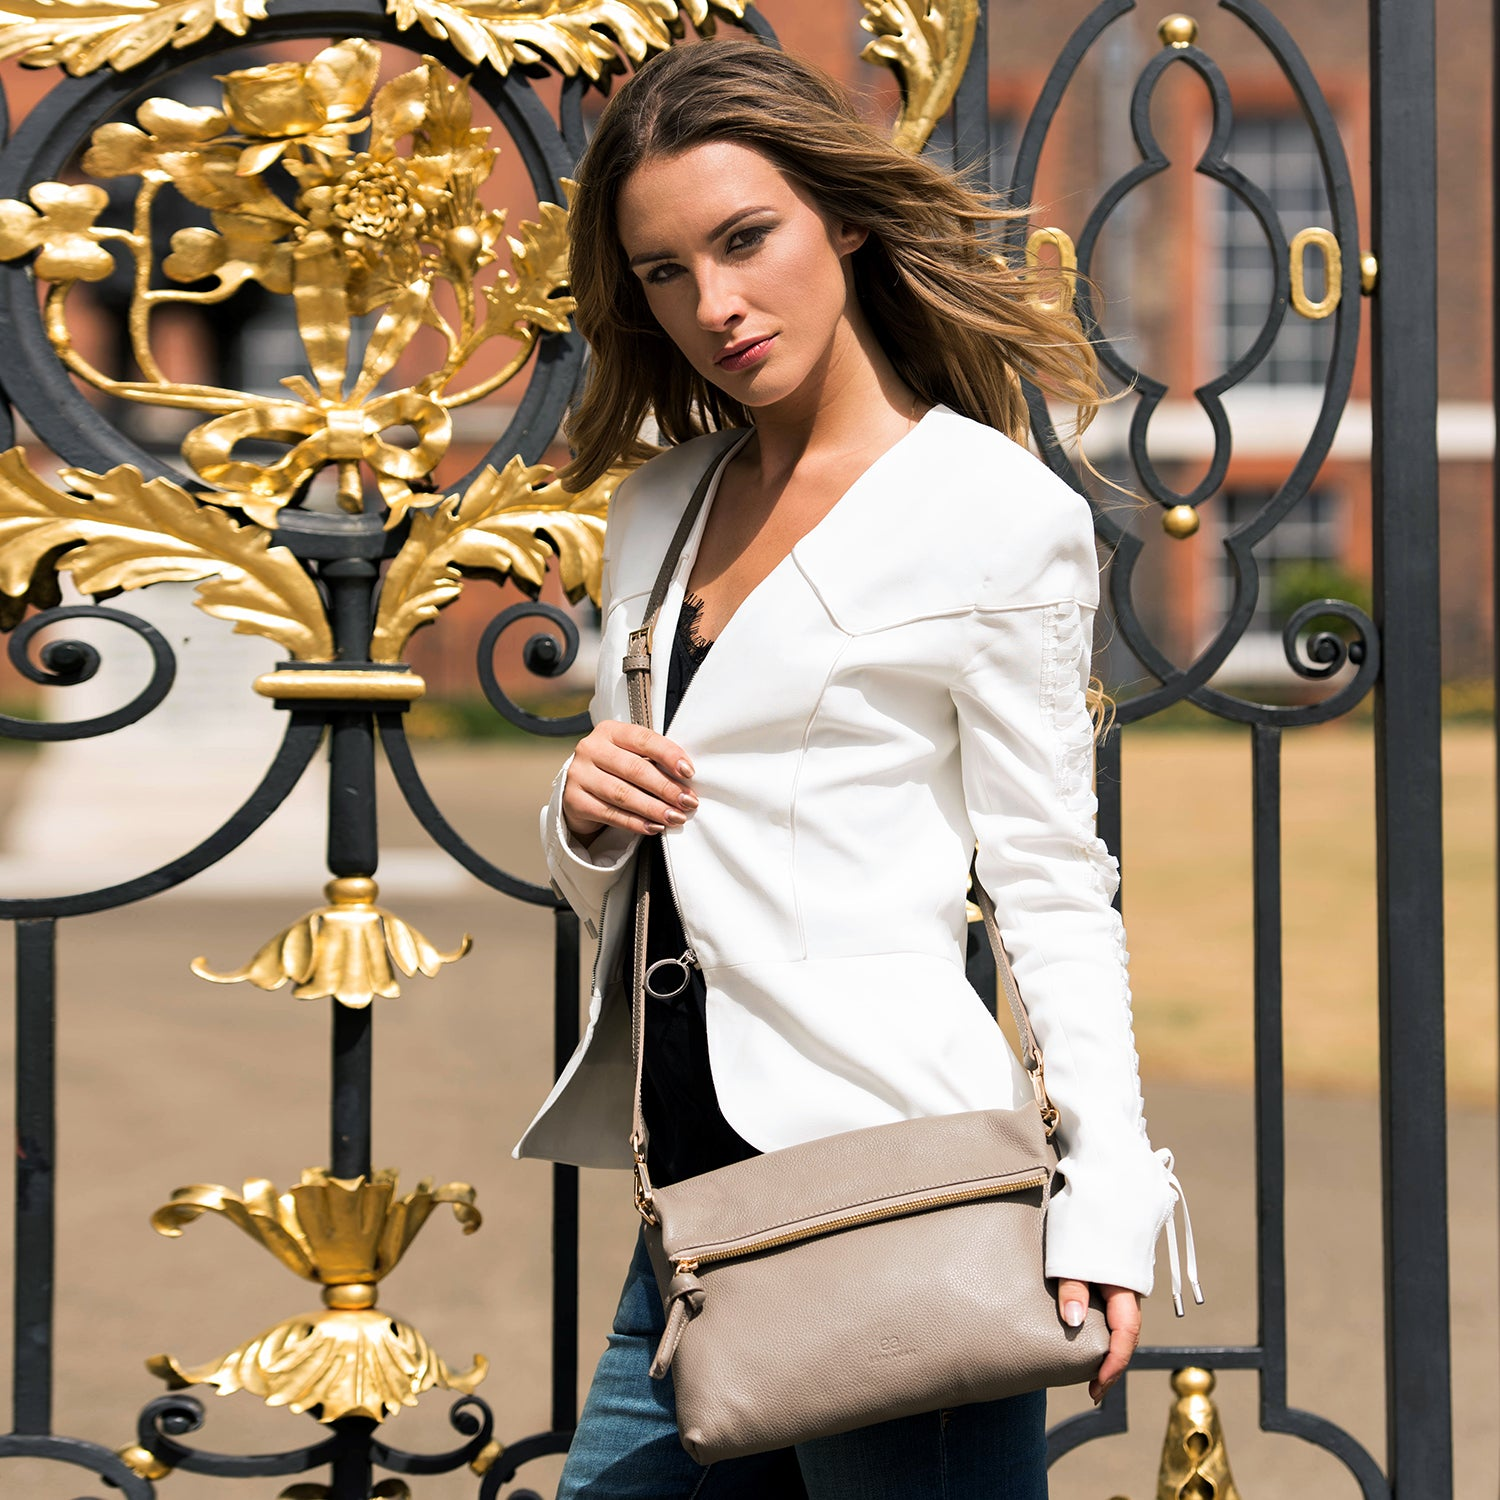 A model wearing brown convertible leather crossbody bag.